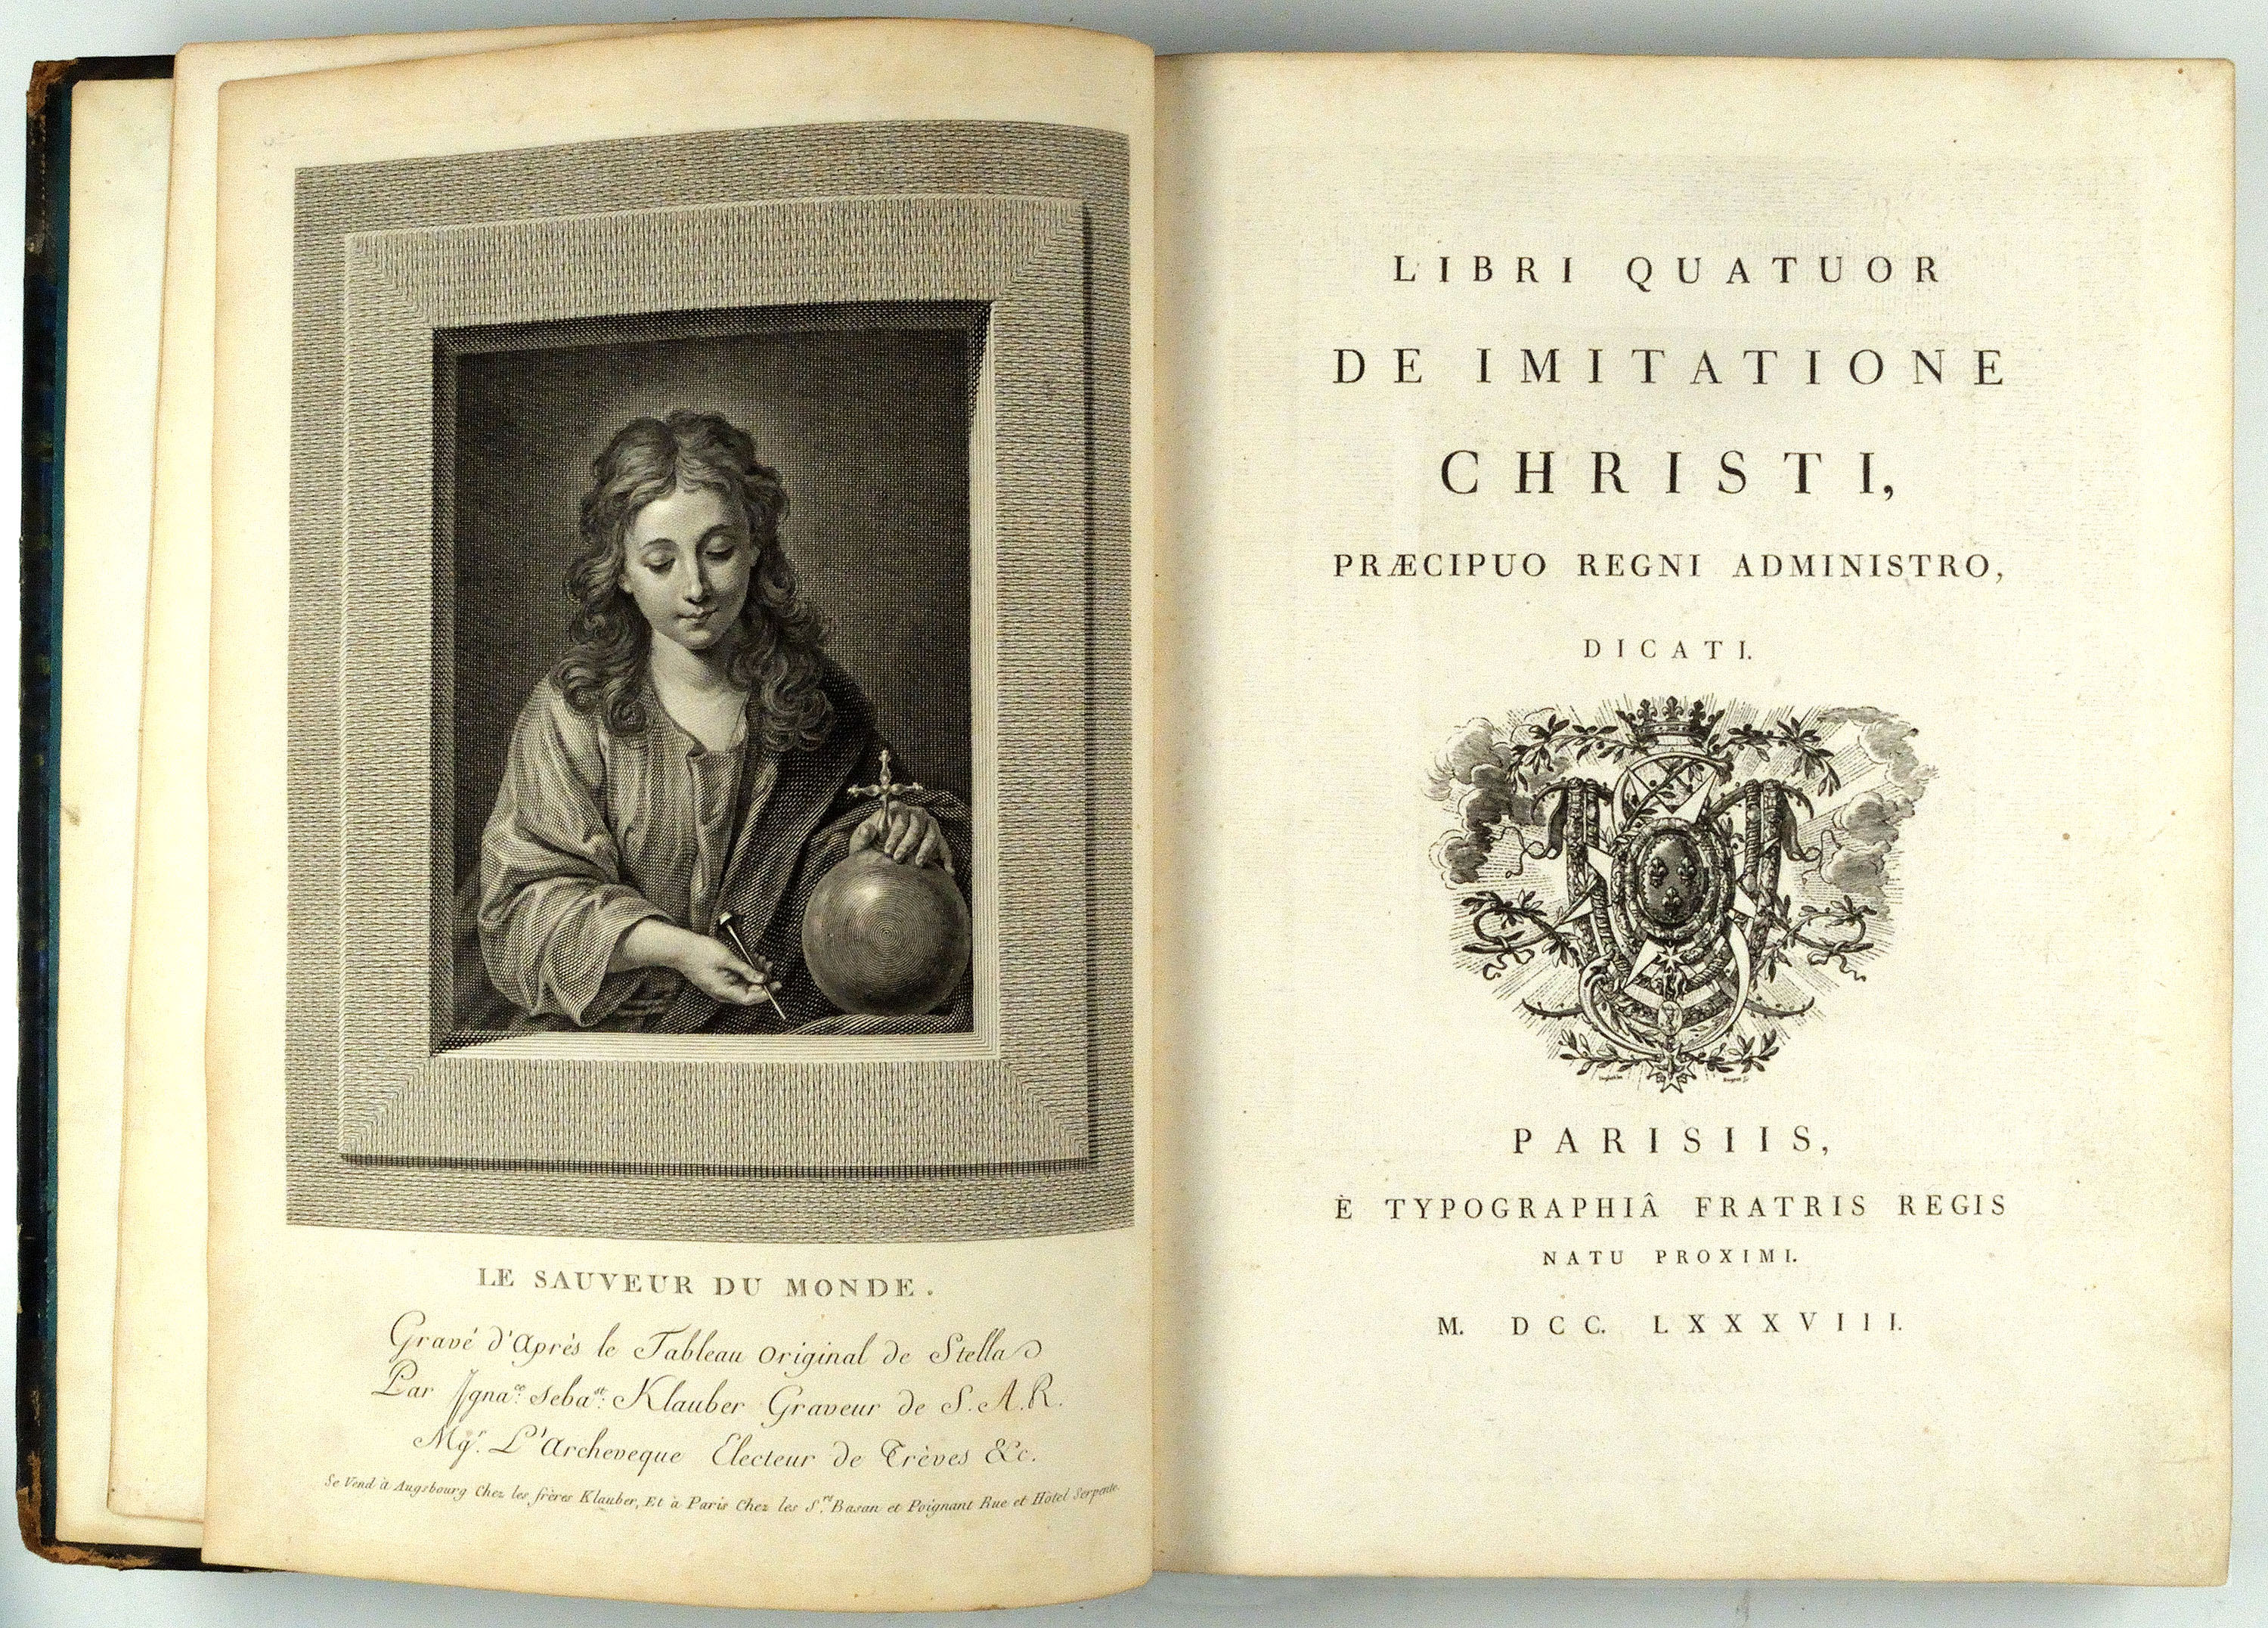 Bridwell Library's 1788 edition of Thomas à Kempis' Libri quatuor De imitatione Christi (The Imitation of Christ)